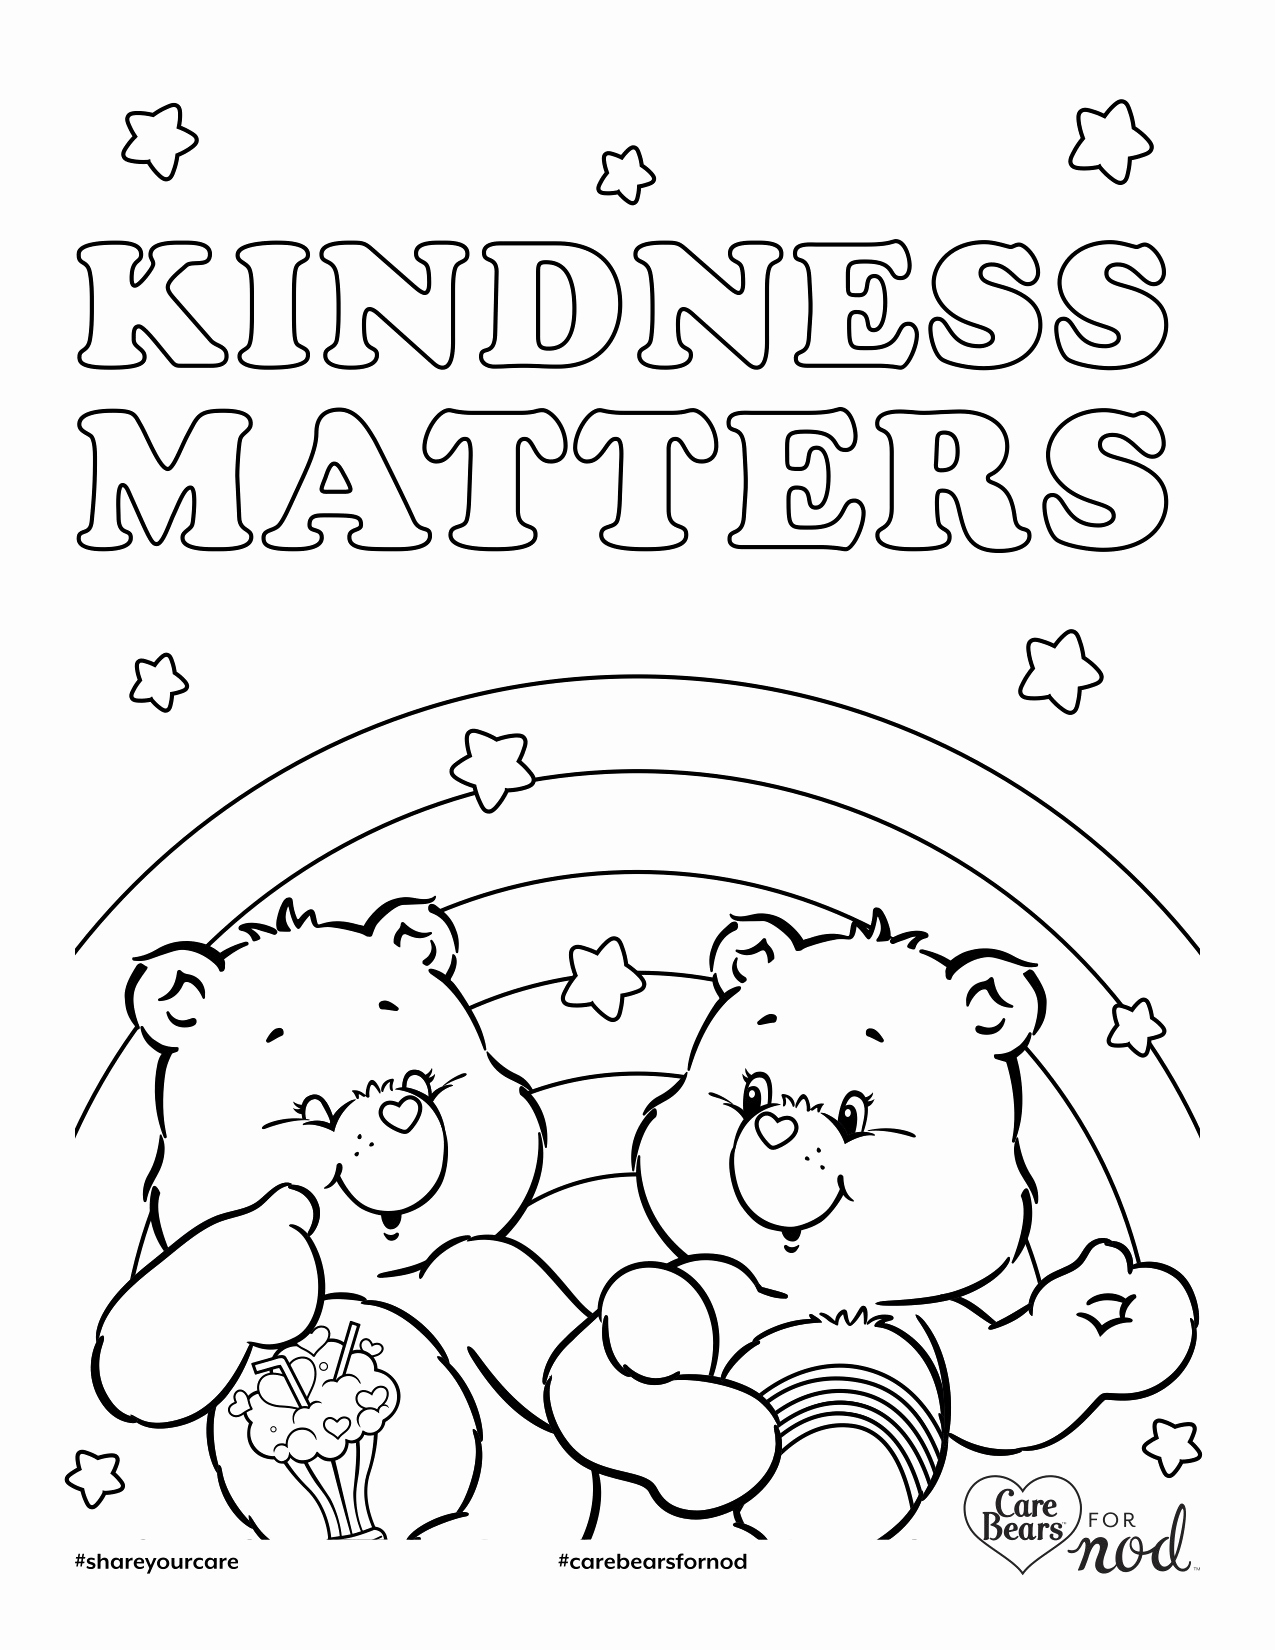 coloring sheets kindness kindness coloring pages at getcoloringscom free kindness coloring sheets